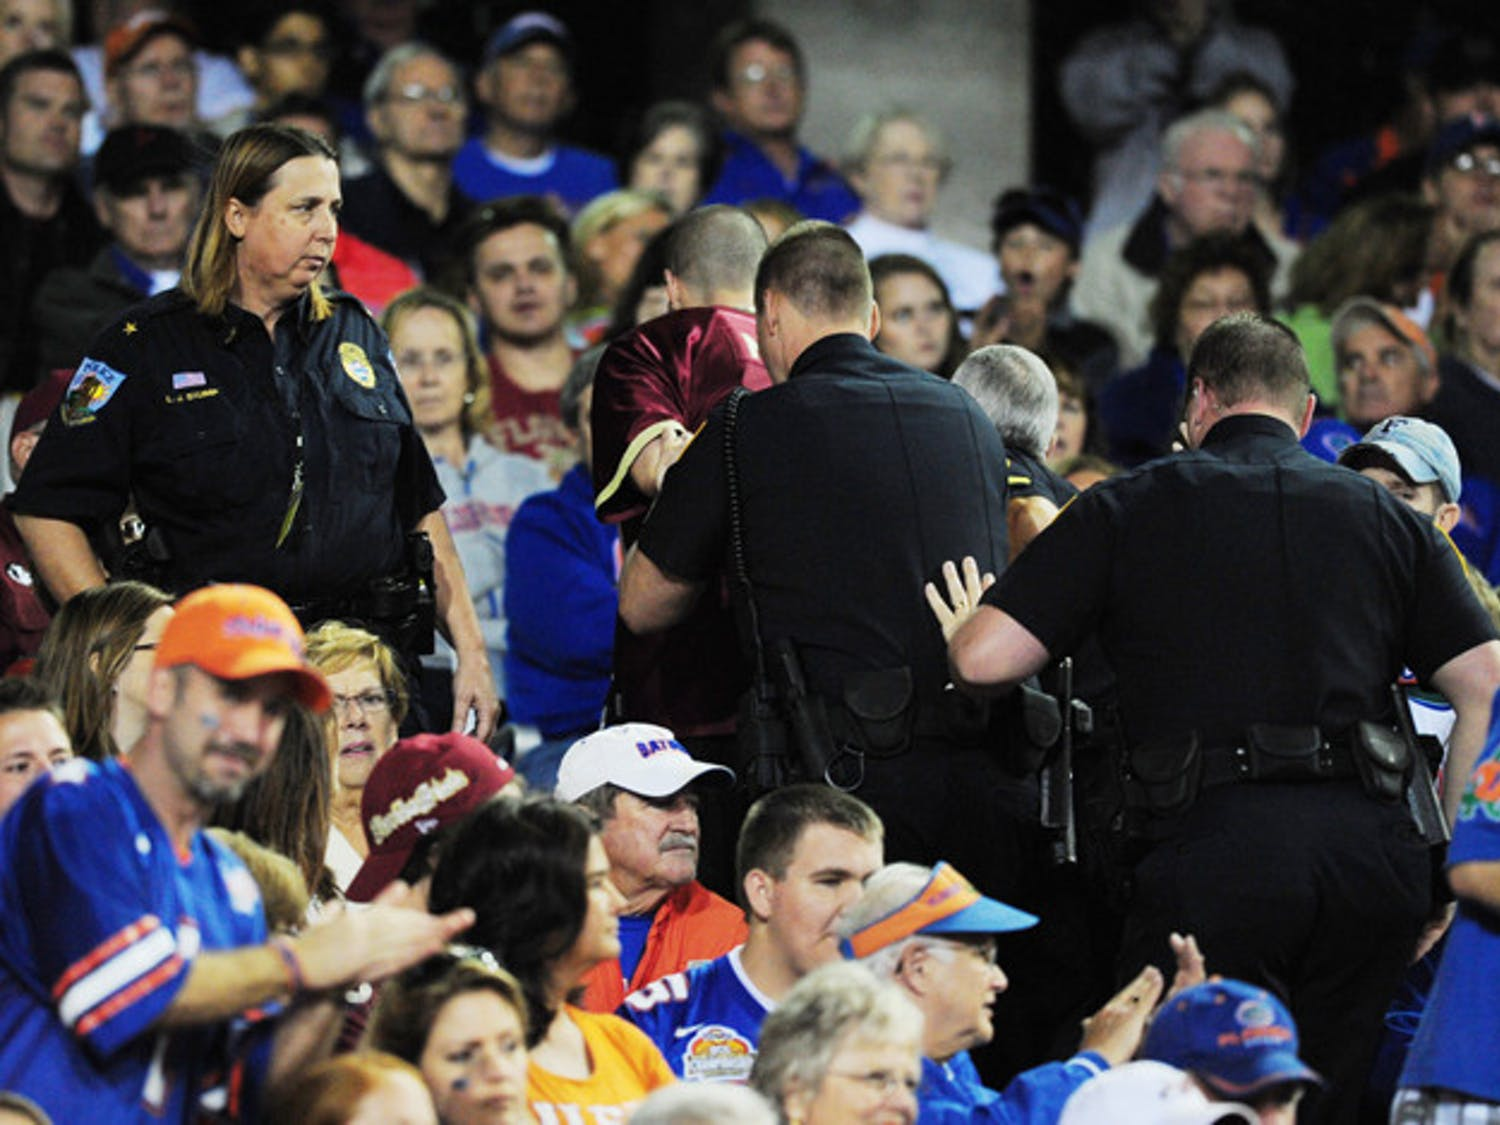 An FSU fan is handcuffed and escorted out of Ben Hill Griffin Stadium during Saturday's game.